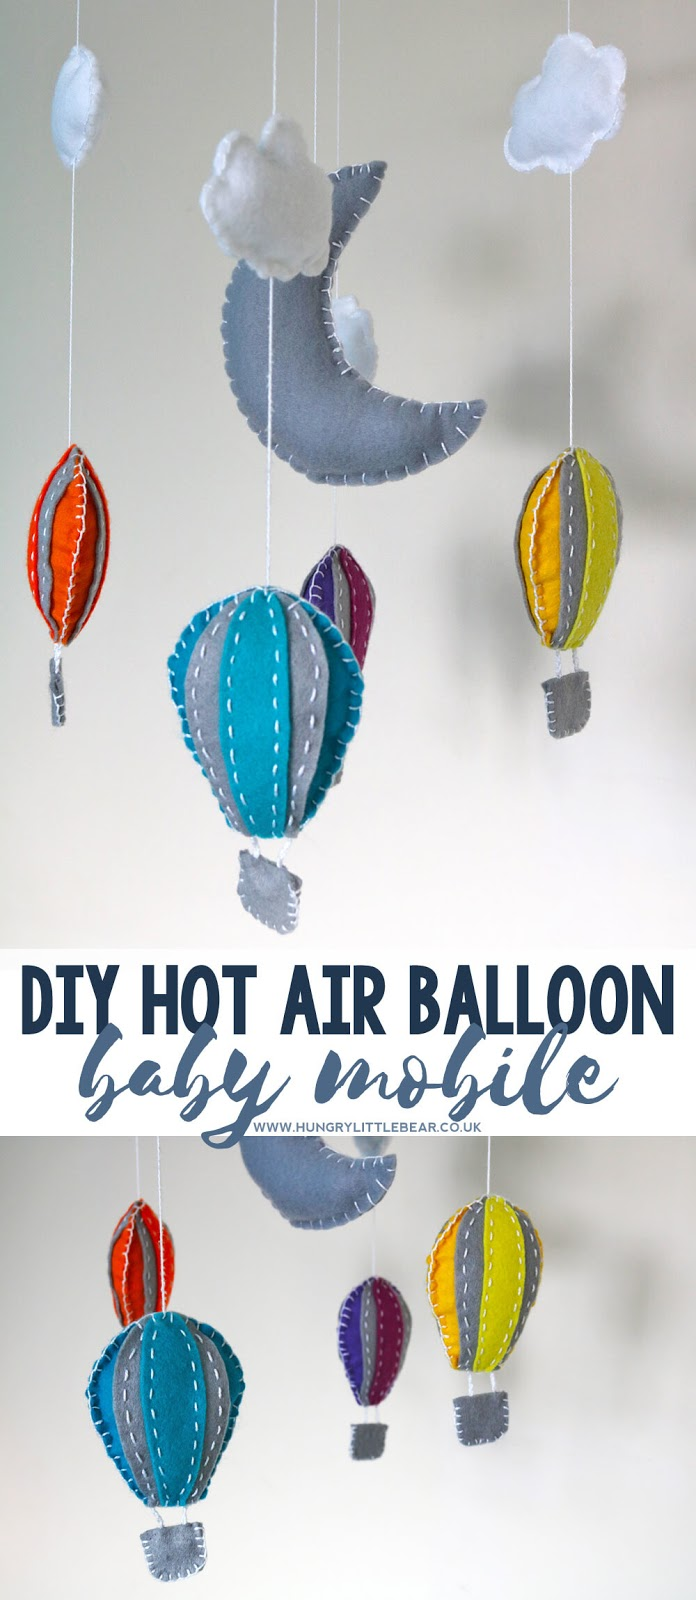 DIY Hot Air Balloon Baby Mobile Tutorial | Hungry Little Bear